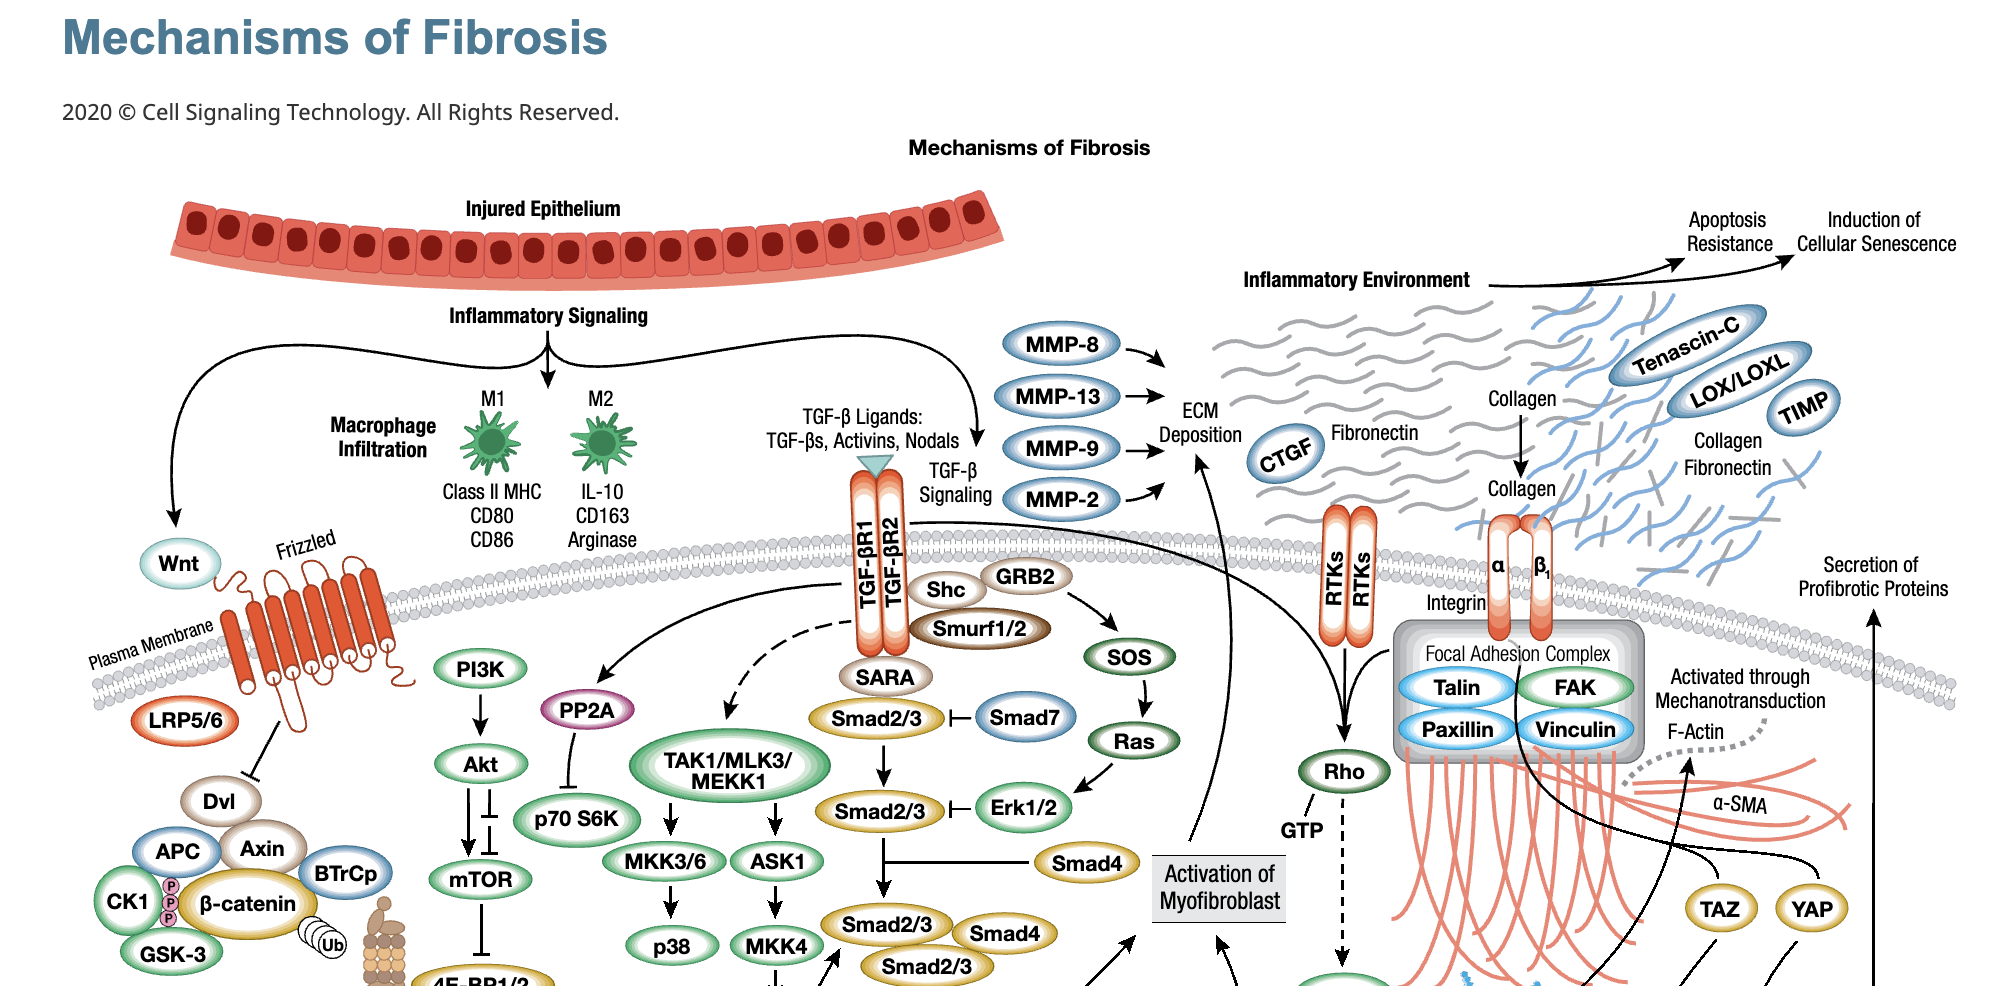 20-EMG-97563 Mechanisms of Fibrosis the context of Covid